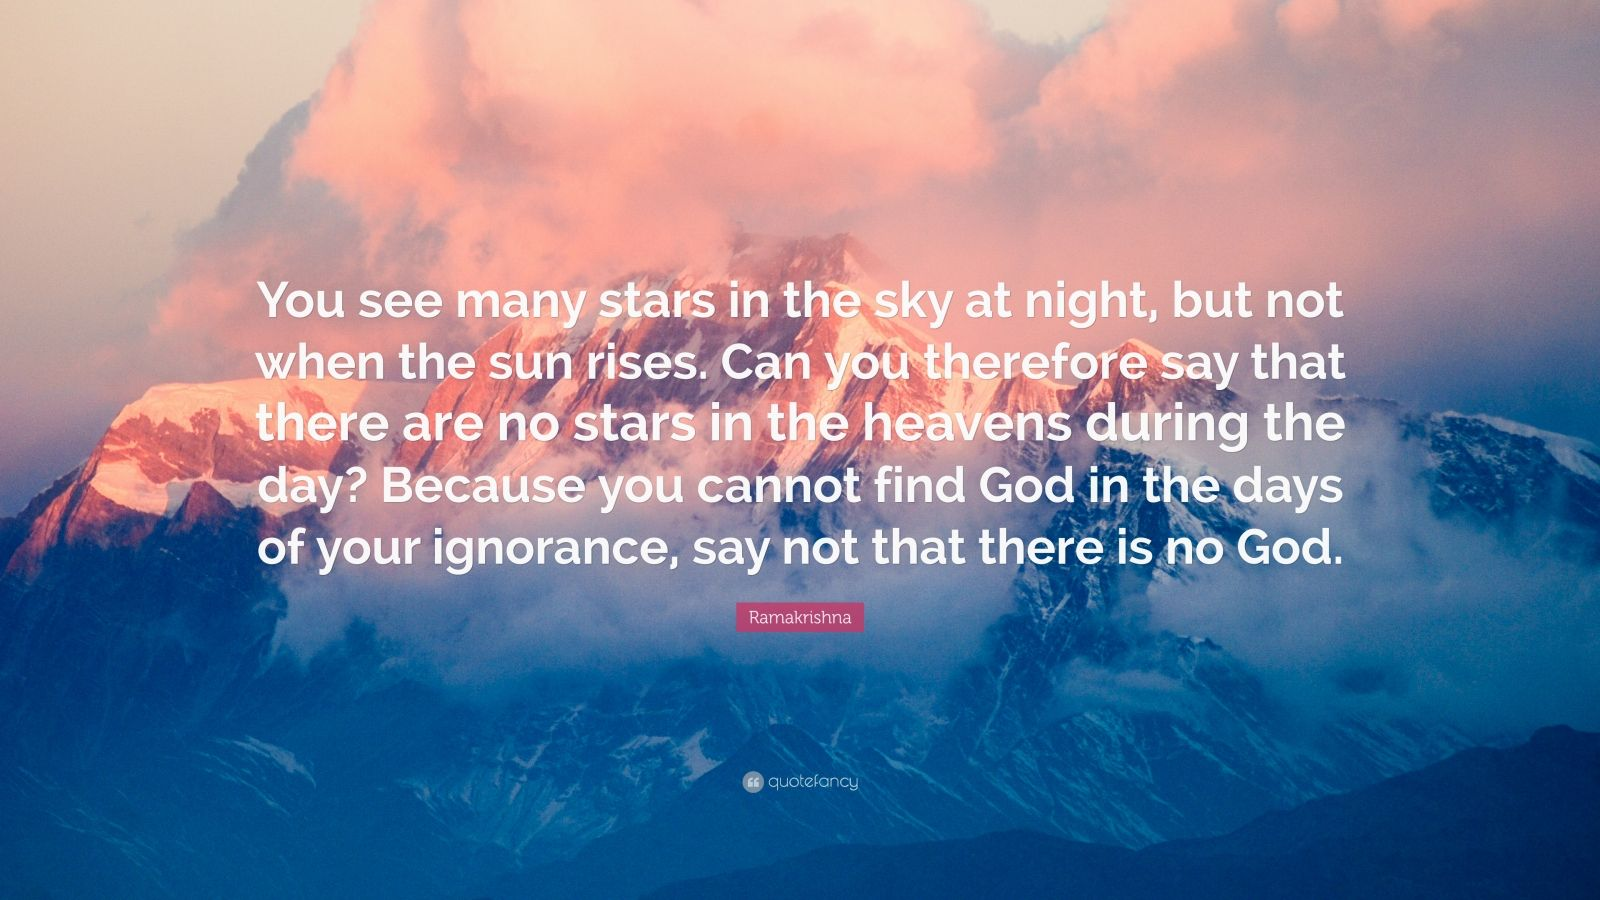 """Ramakrishna Quote: """"You see many stars in the sky at night, but not when the sun rises. Can you therefore say that there are no stars in the heavens during the day? Because you cannot find God in the days of your ignorance, say not that there is no God."""""""